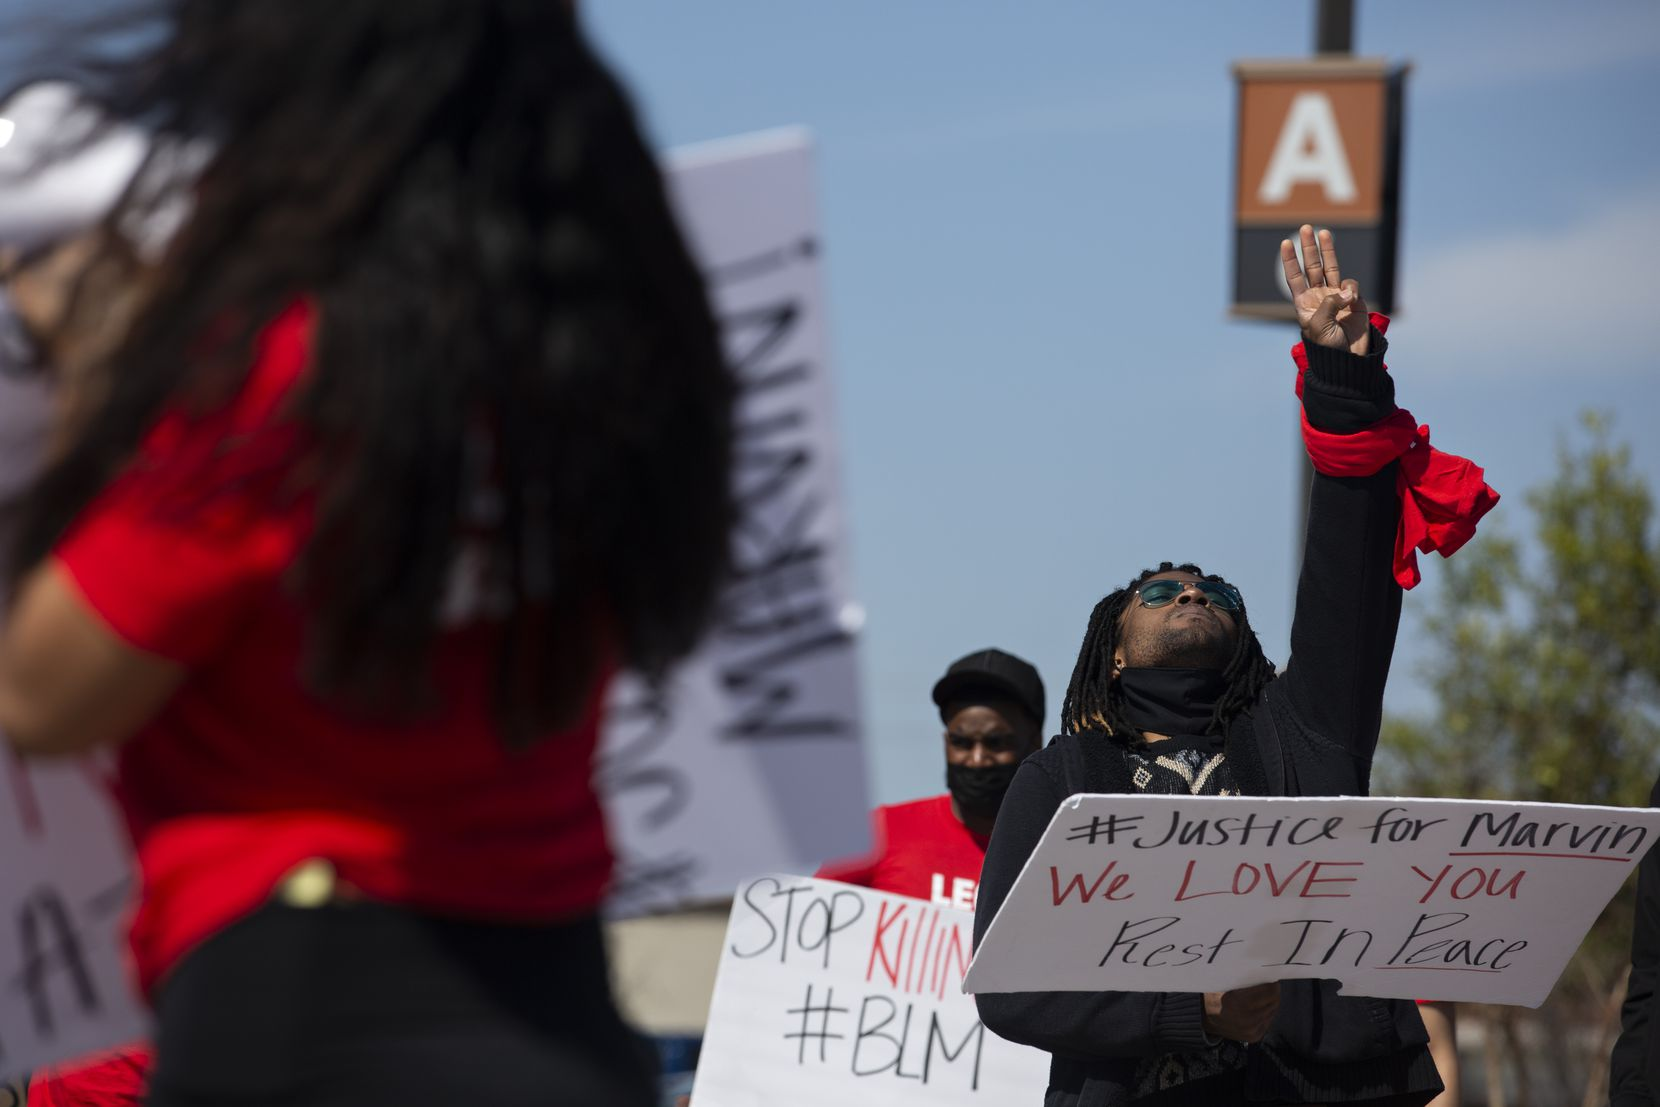 Quinten Scott holds up three fingers during a march through the Allen Outlets on Sunday, March 21, 2021 for his older brother Marvin Scott III, who died a week prior while in custody at the Collin County Jail on March 14, 2021. ÒIÕm just now to a point where I feel I can speakÓ, said Quinten after leading several chants and telling the crowd fond stories of his older brother. (Shelby Tauber/Special Contributor)